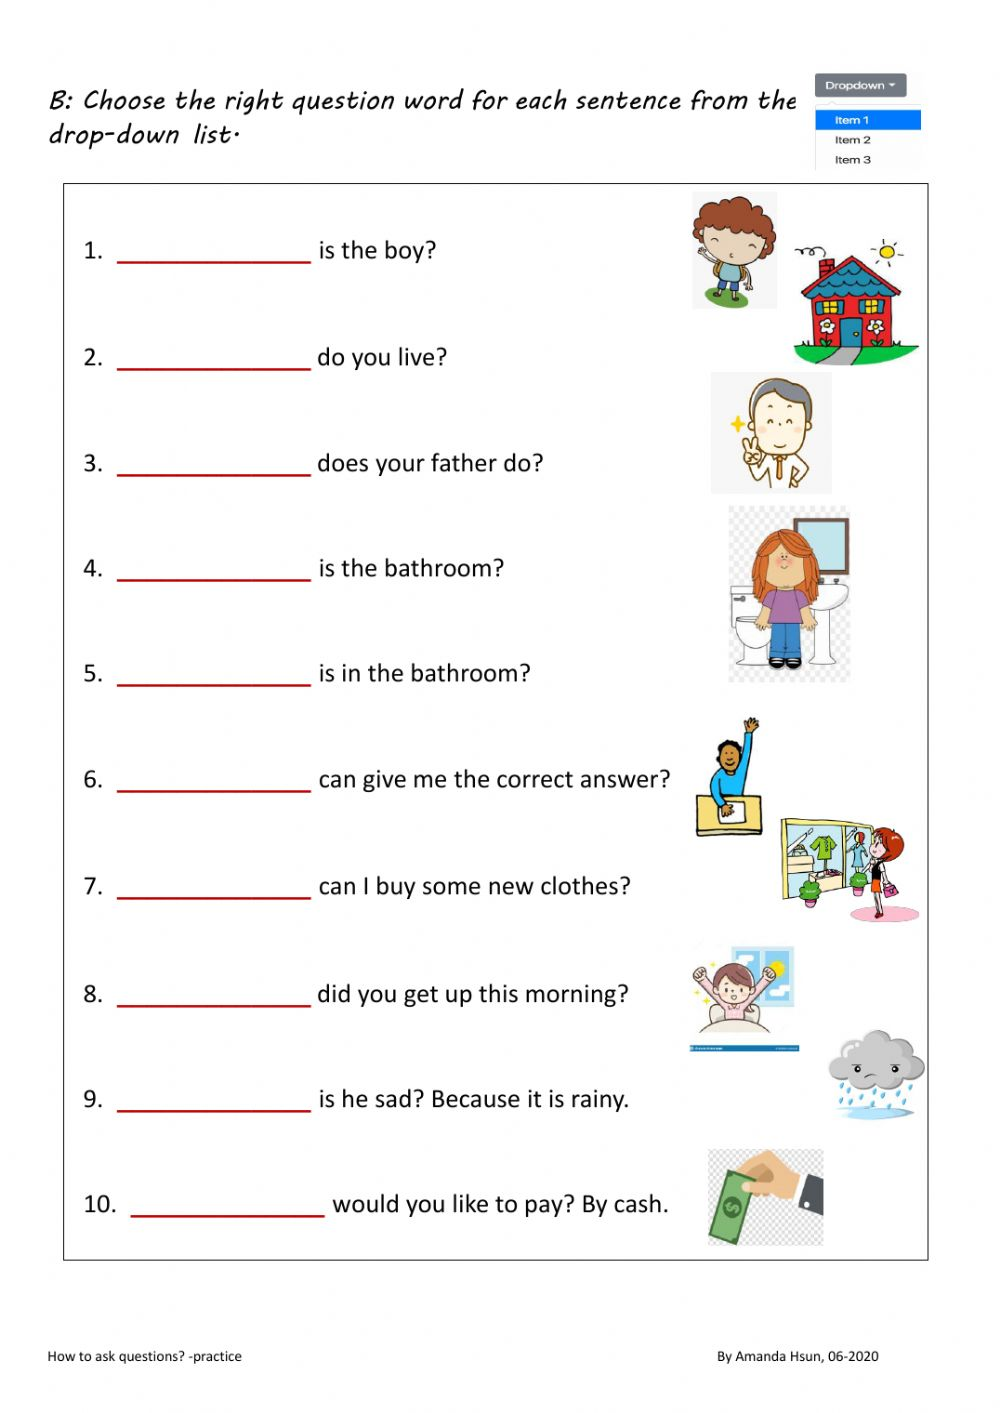 How to ask questions-practice worksheet